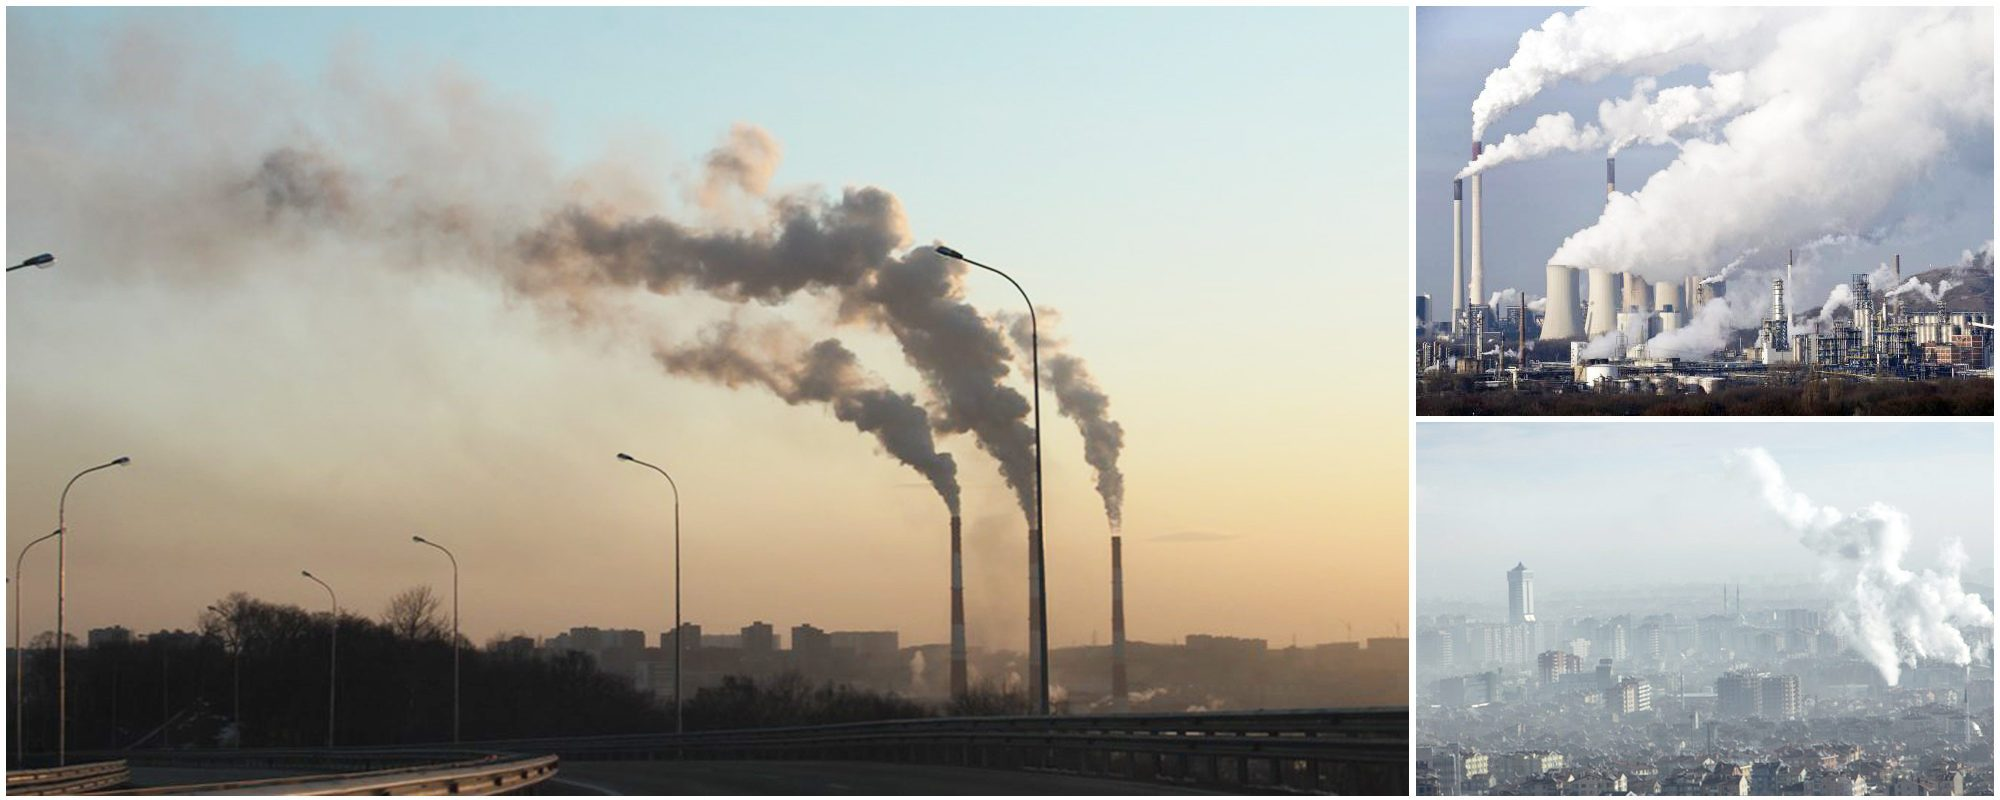 air pollution effects and solutions Latest articles on air pollution in the uae air pollution: sources and effects in urban areas and how it affect the investment and economy.